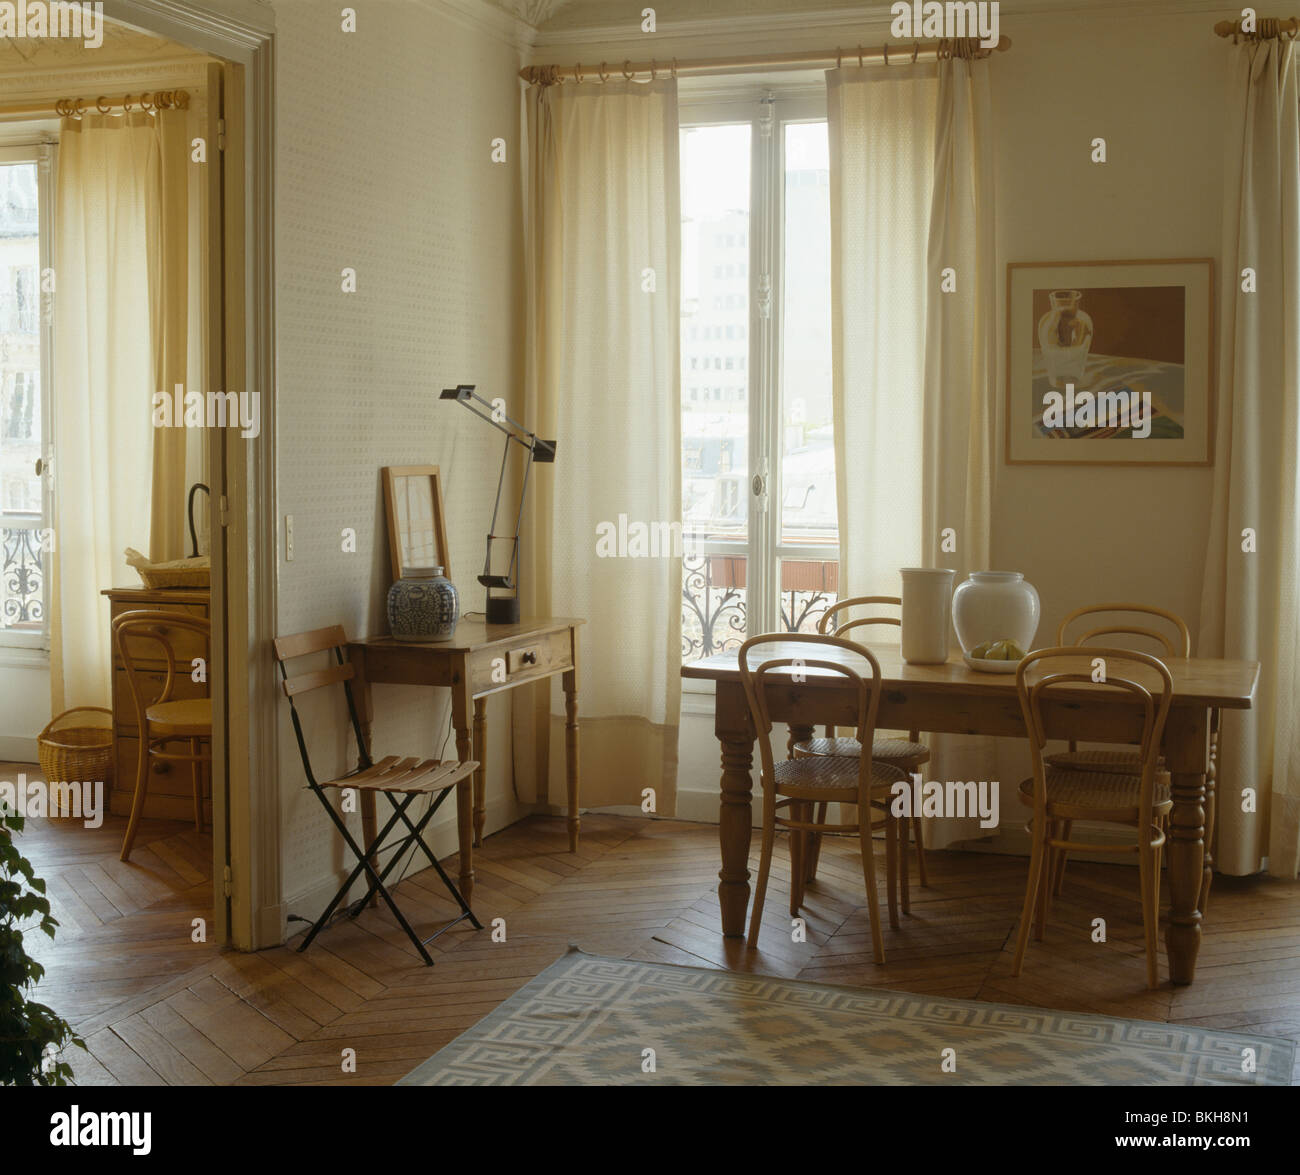 Antique Bentwood chairs and old pine table in cream apartment dining room  with cream curtains at French windows - Antique Bentwood Chairs And Old Pine Table In Cream Apartment Dining